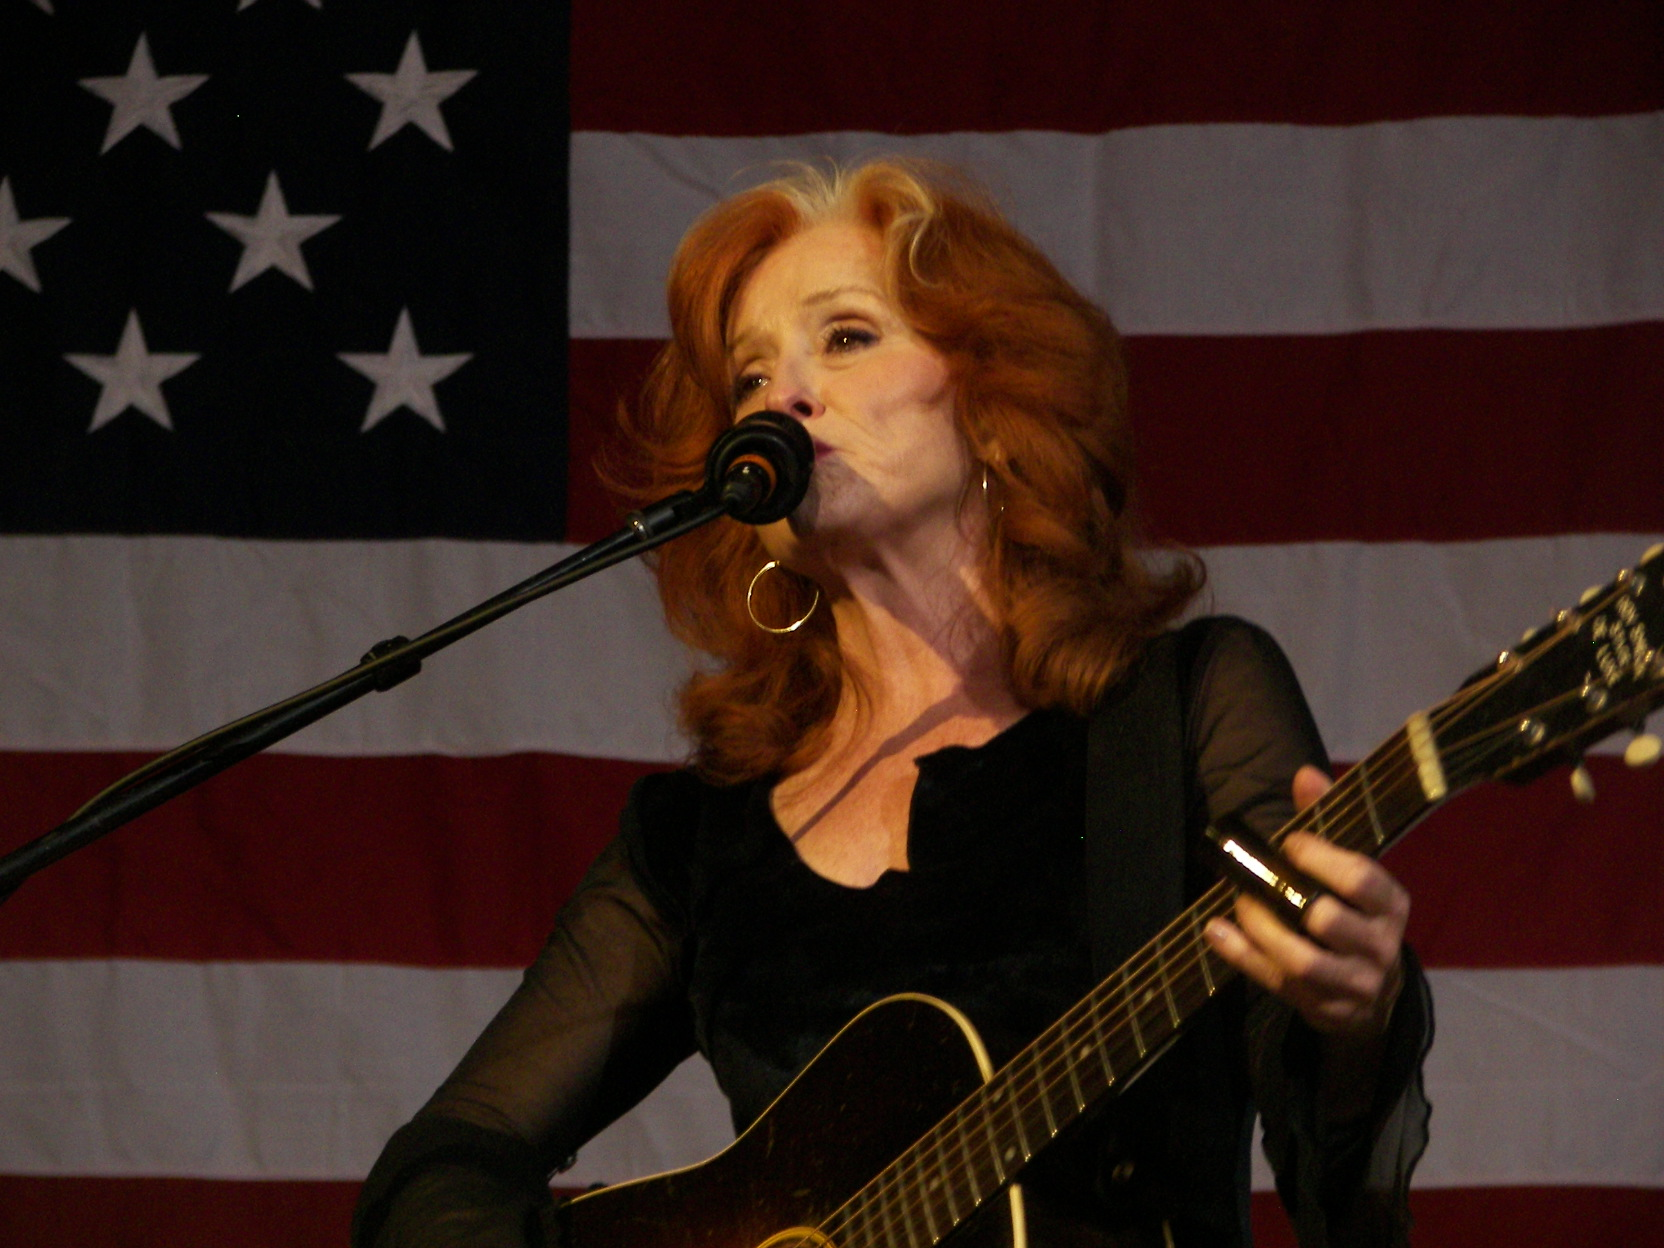 Photo Bonnie Raitt via Opendata BNF